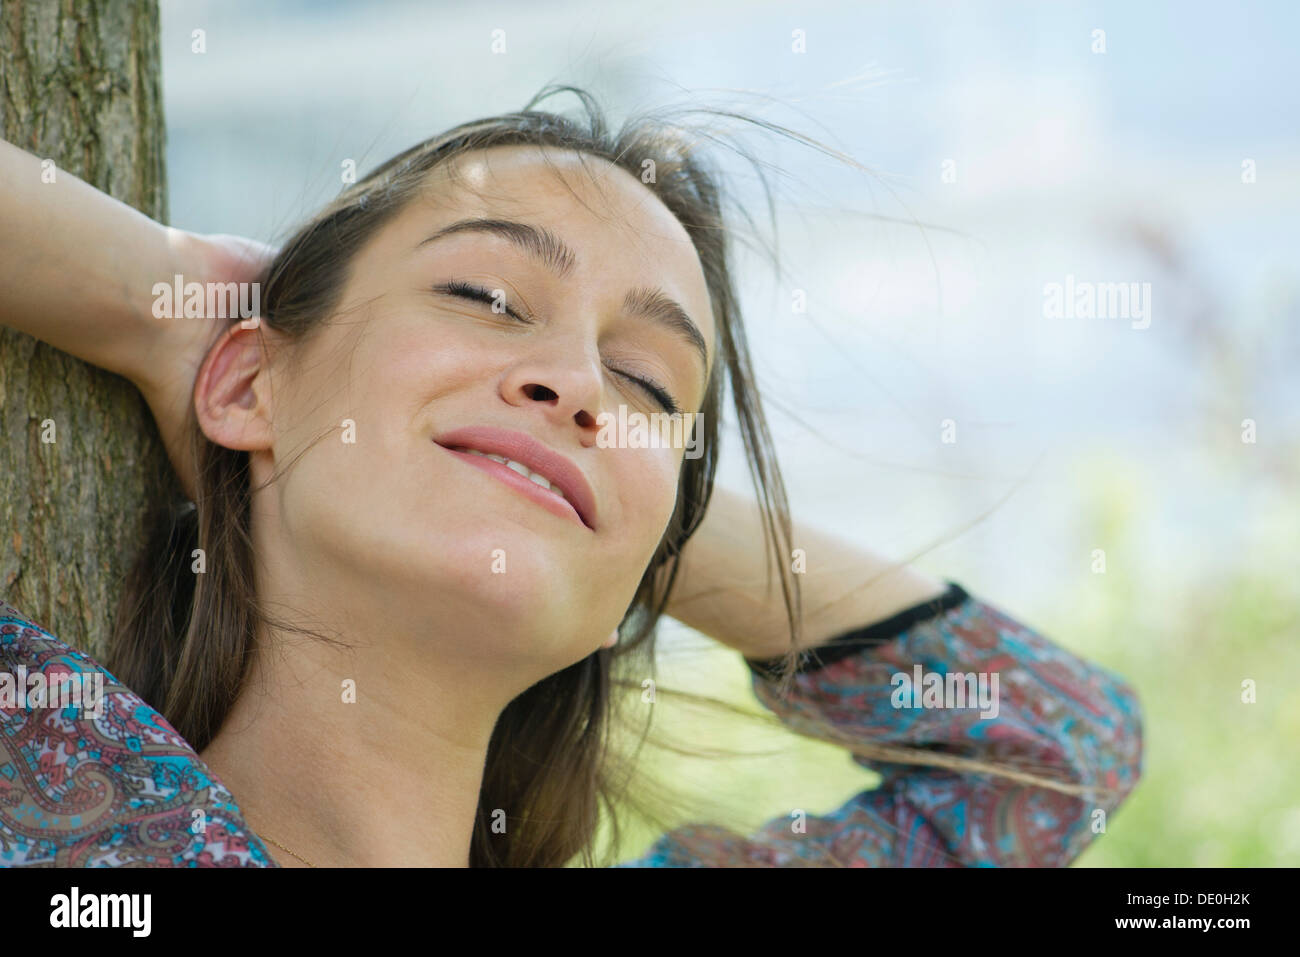 Woman relaxing outdoors, portrait Photo Stock